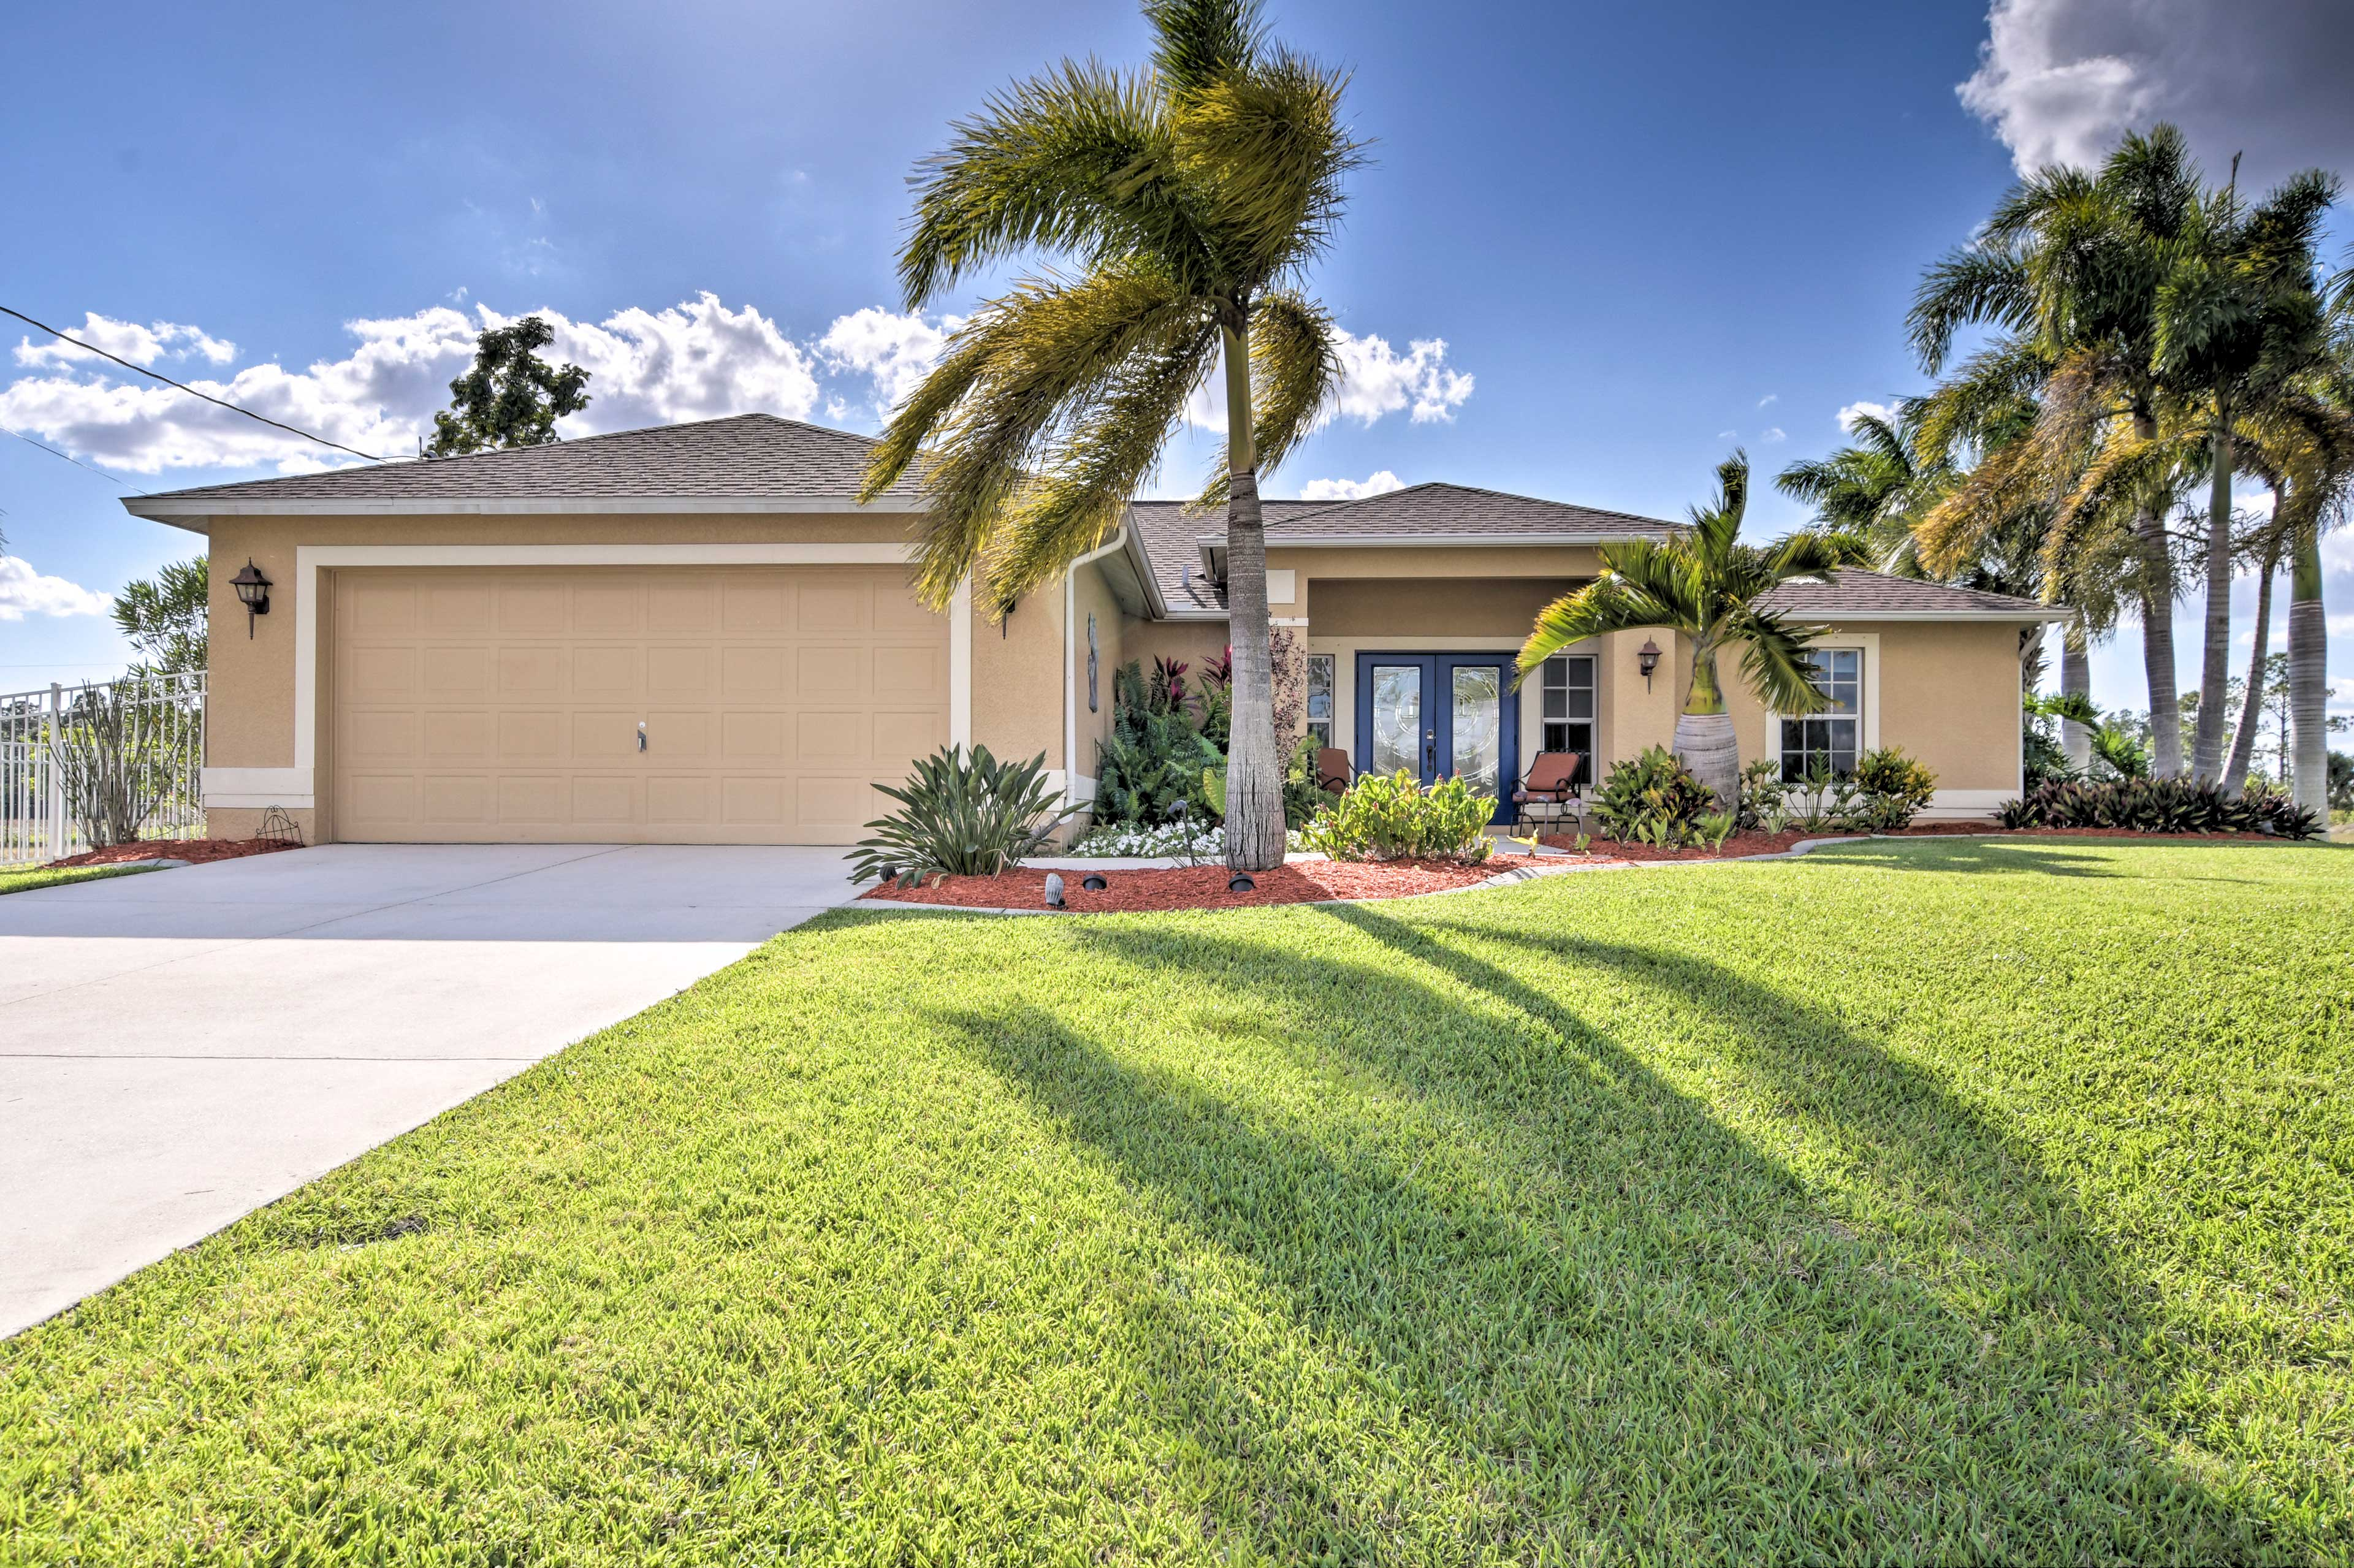 This well-manicured home sits just 30-40 minutes from Cape Coral!